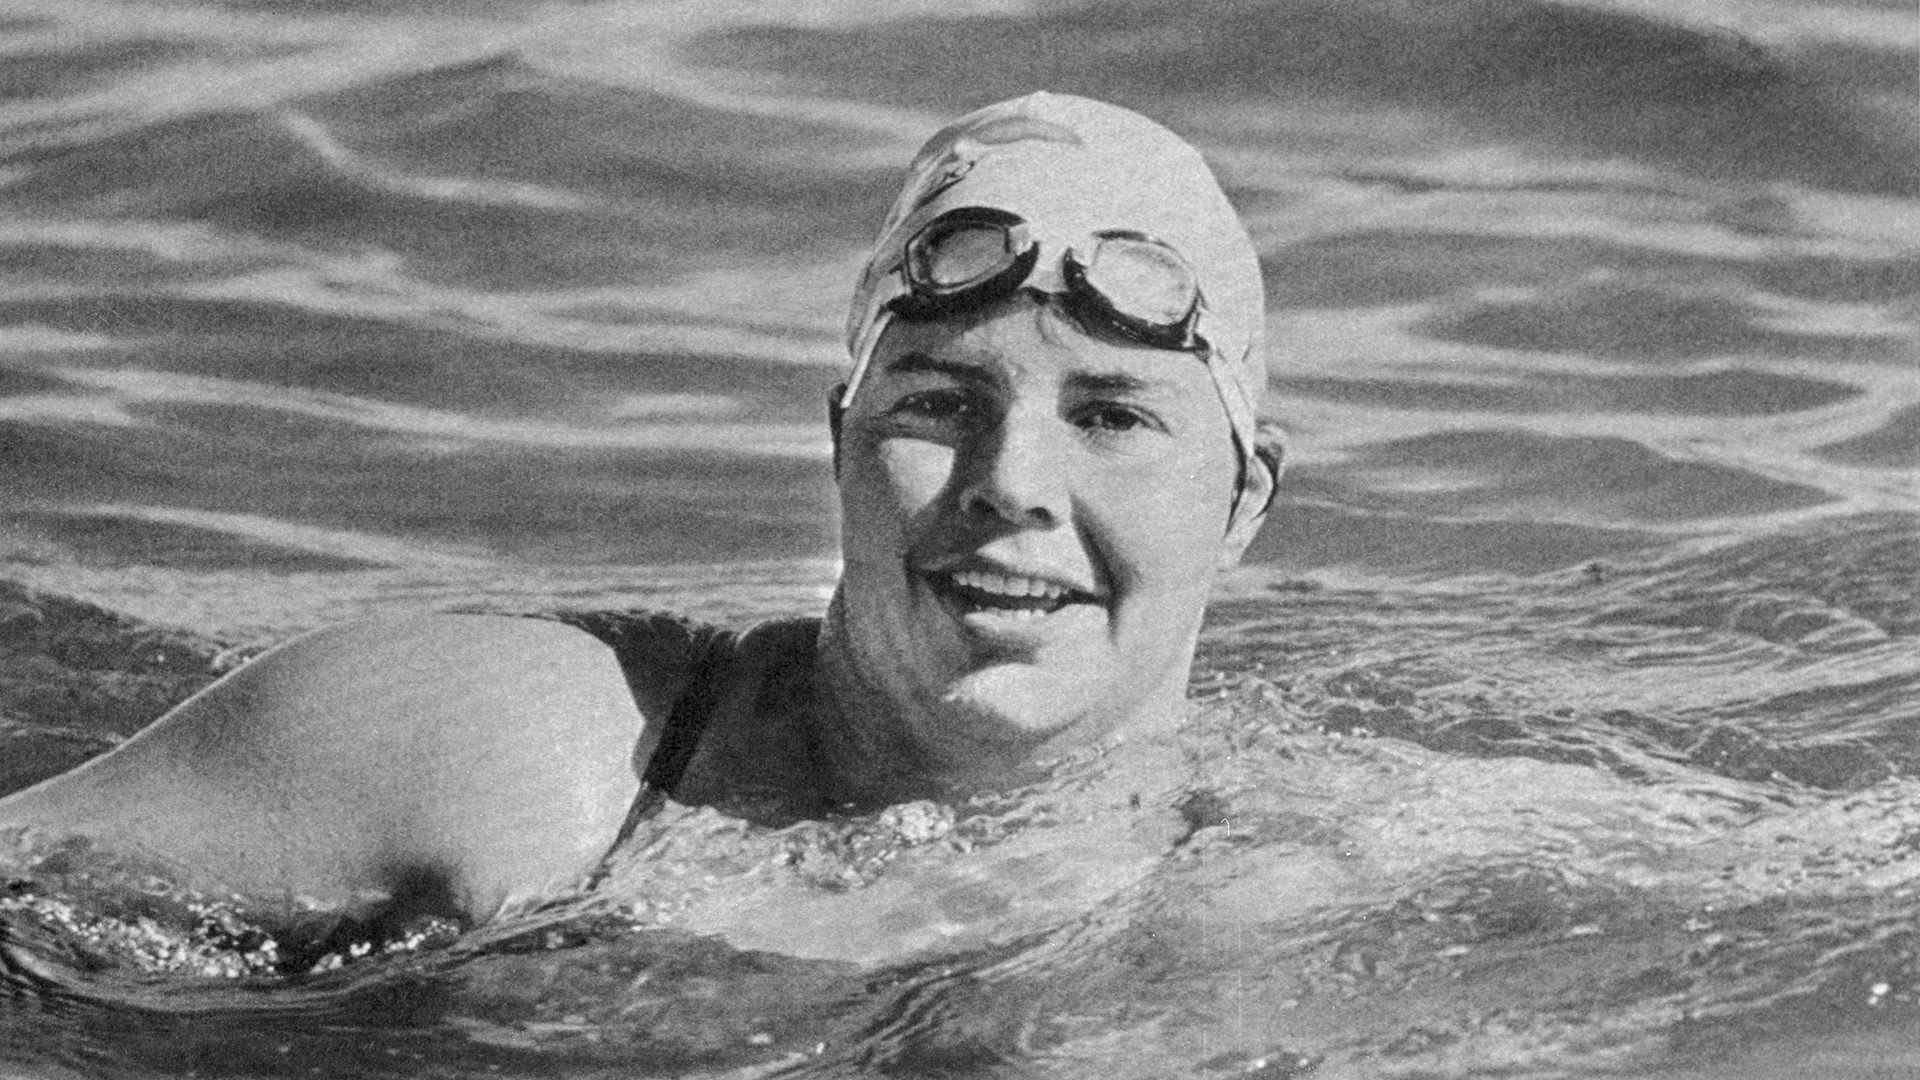 August 7, 1987: Lynne Cox Became the First Person to Swim From the United States to the Soviet Union